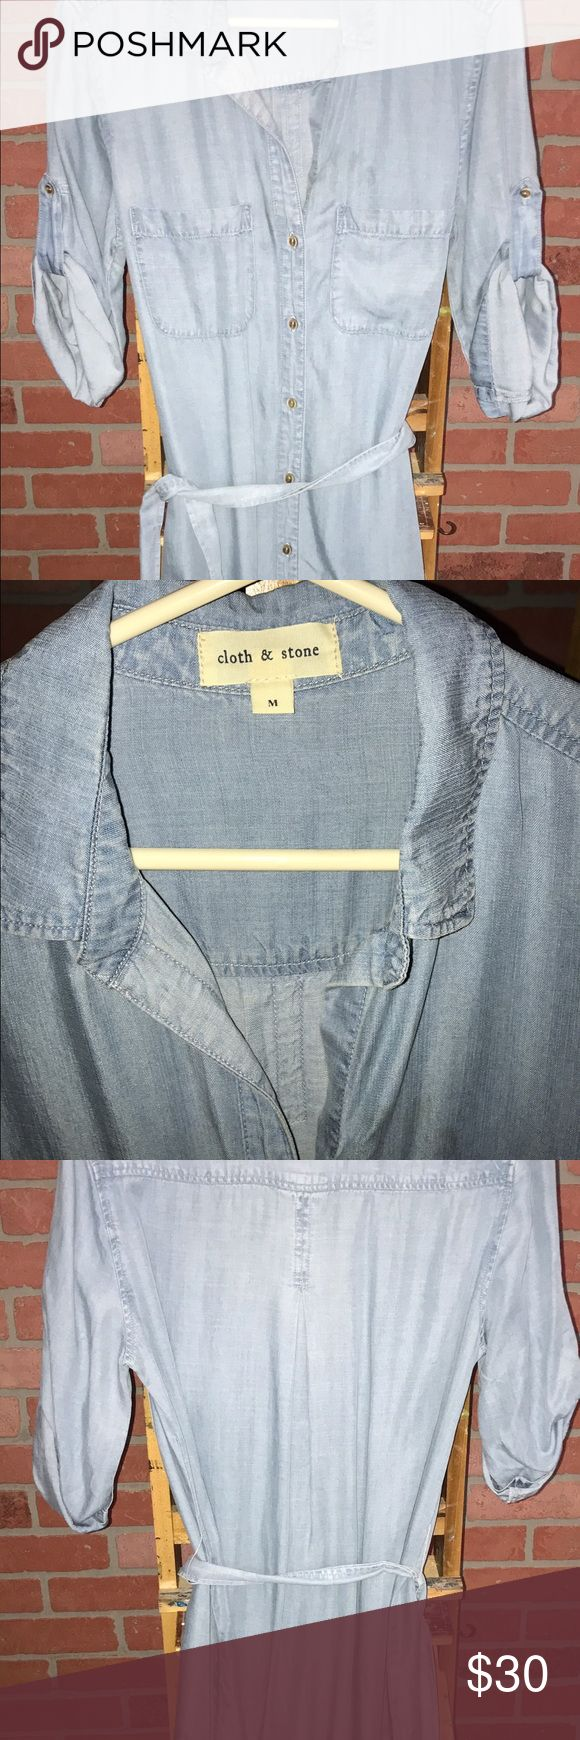 Cloth and Stone chambray dress size M Cloth and Stone chambray dress size medium. This dress is 35 inches from shoulder to hem. Worn once. Perfect condition cloth and Stone Dresses Long Sleeve